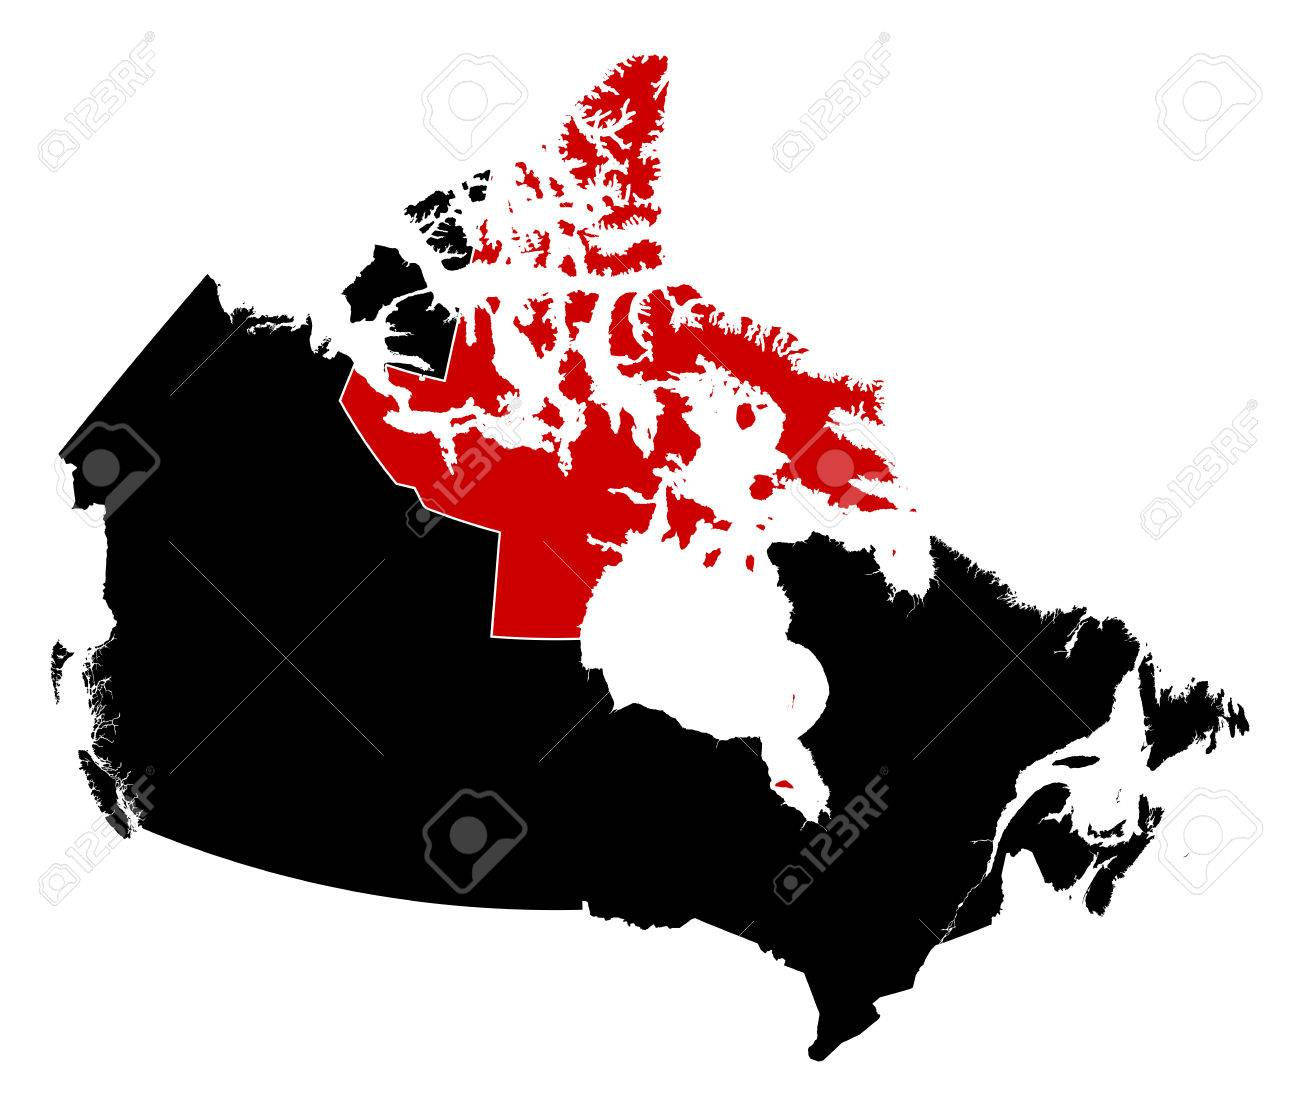 Map of canada in black nunavut is highlighted in red royalty free map of canada in black nunavut is highlighted in red stock vector 58177393 gumiabroncs Gallery